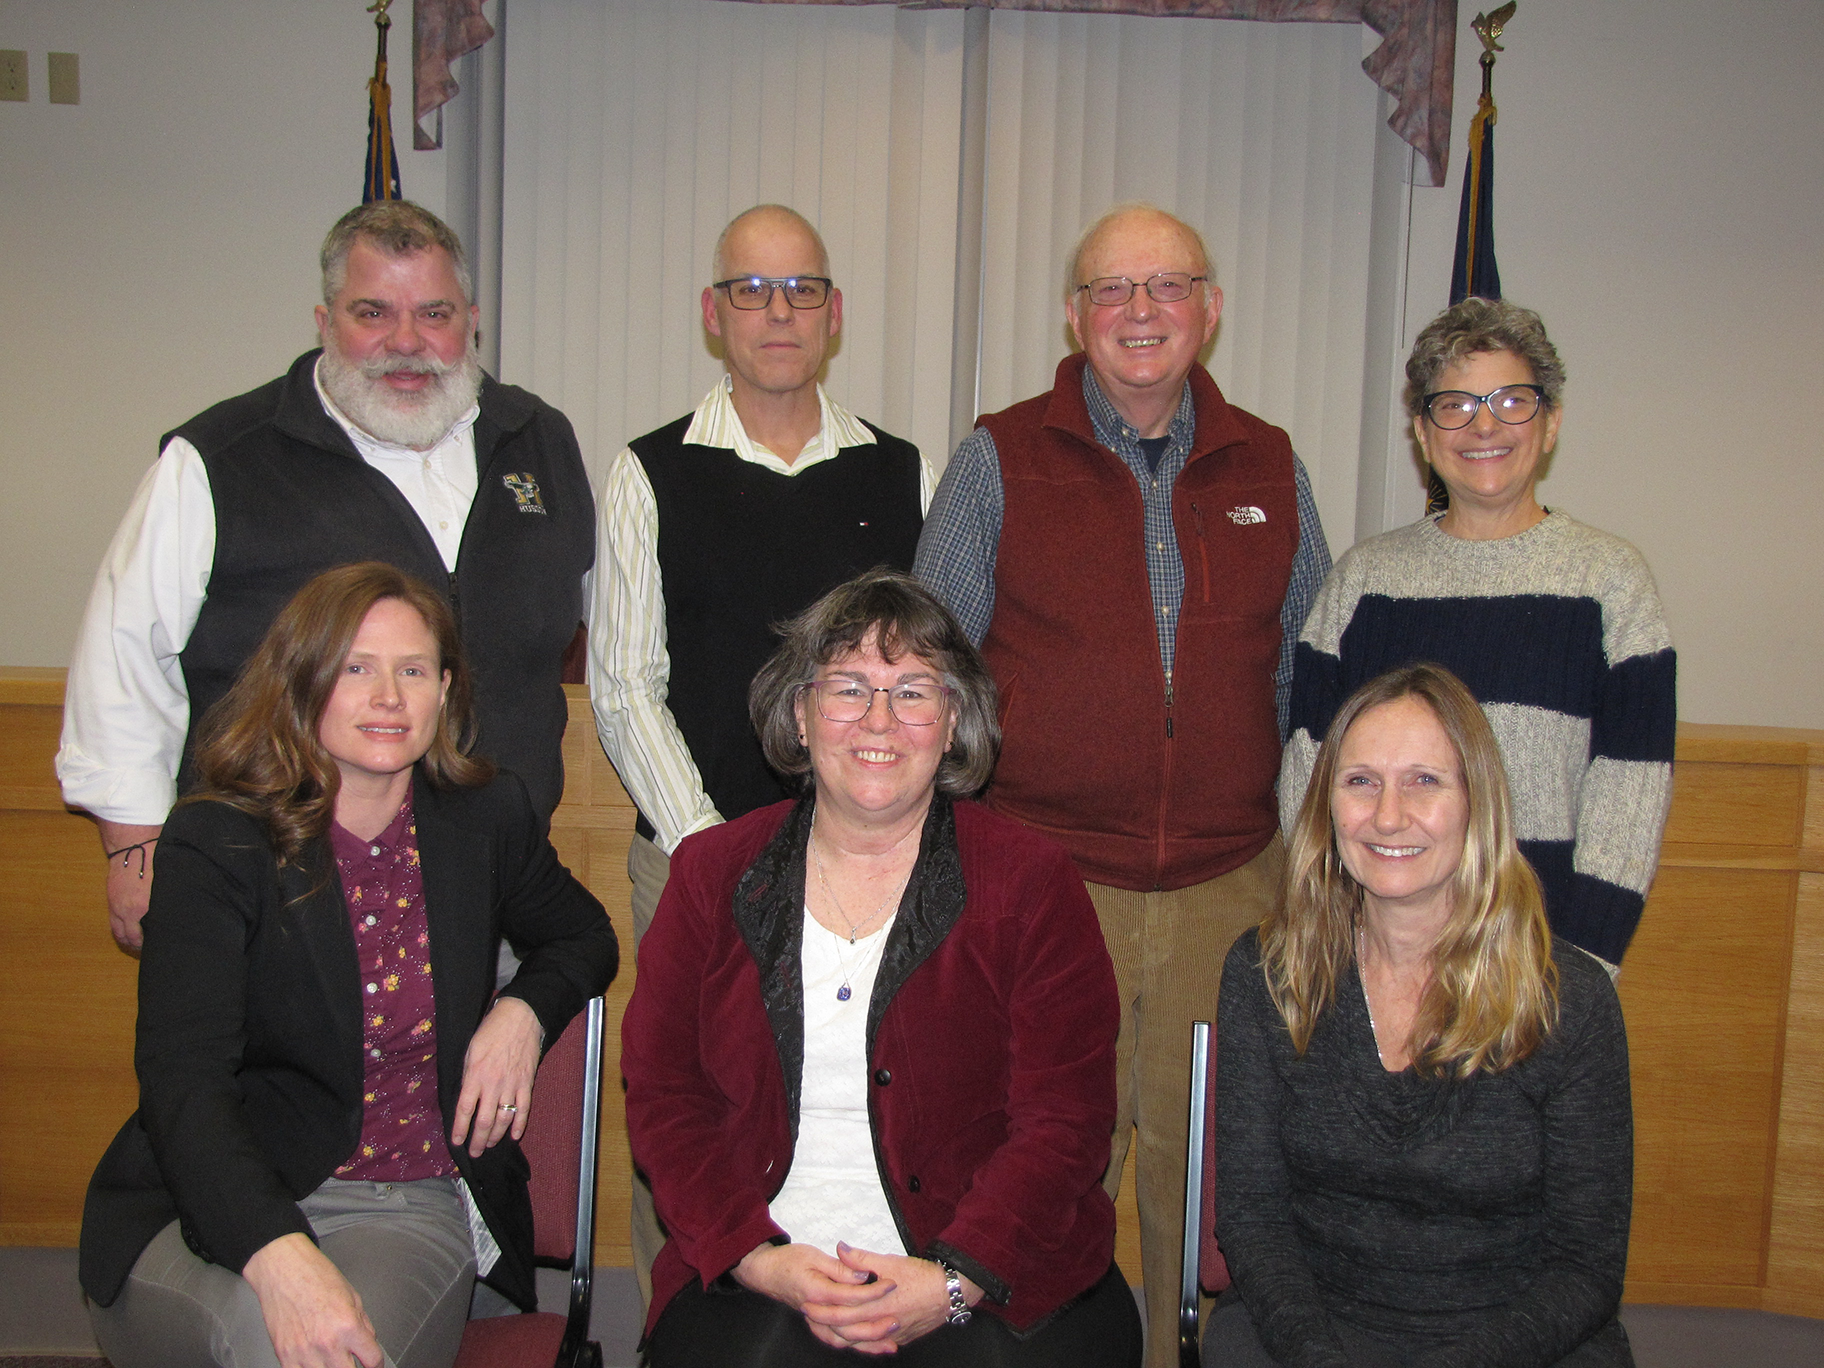 Group photo of 2020 Orono Town Council